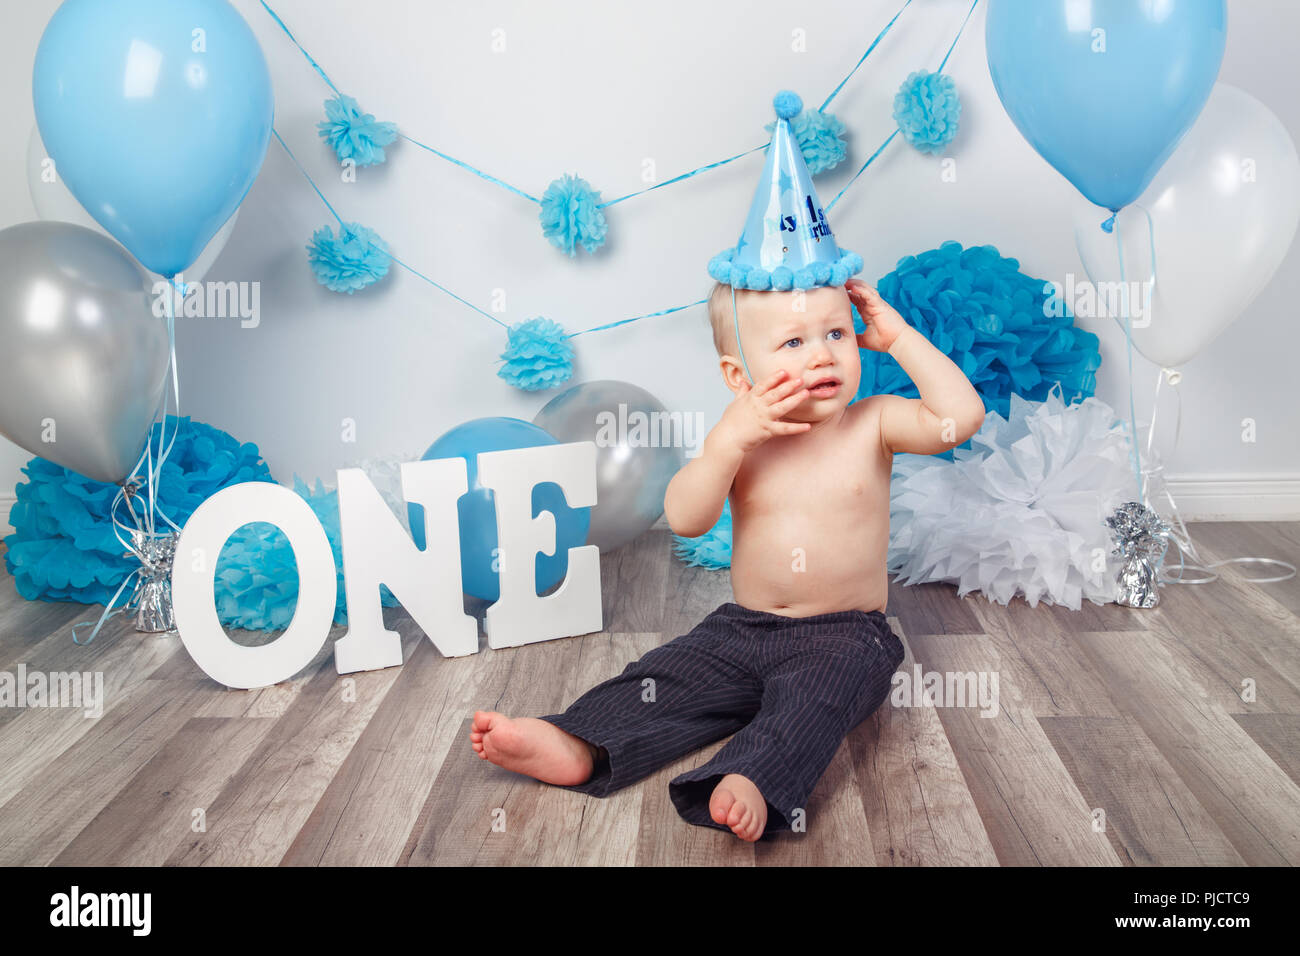 Portrait Of Adorable Caucasian Baby Boy With Blue Eyes In Dark Pants And Cone Hat Celebrating His First Birthday Letters One Balloons On Backgrou